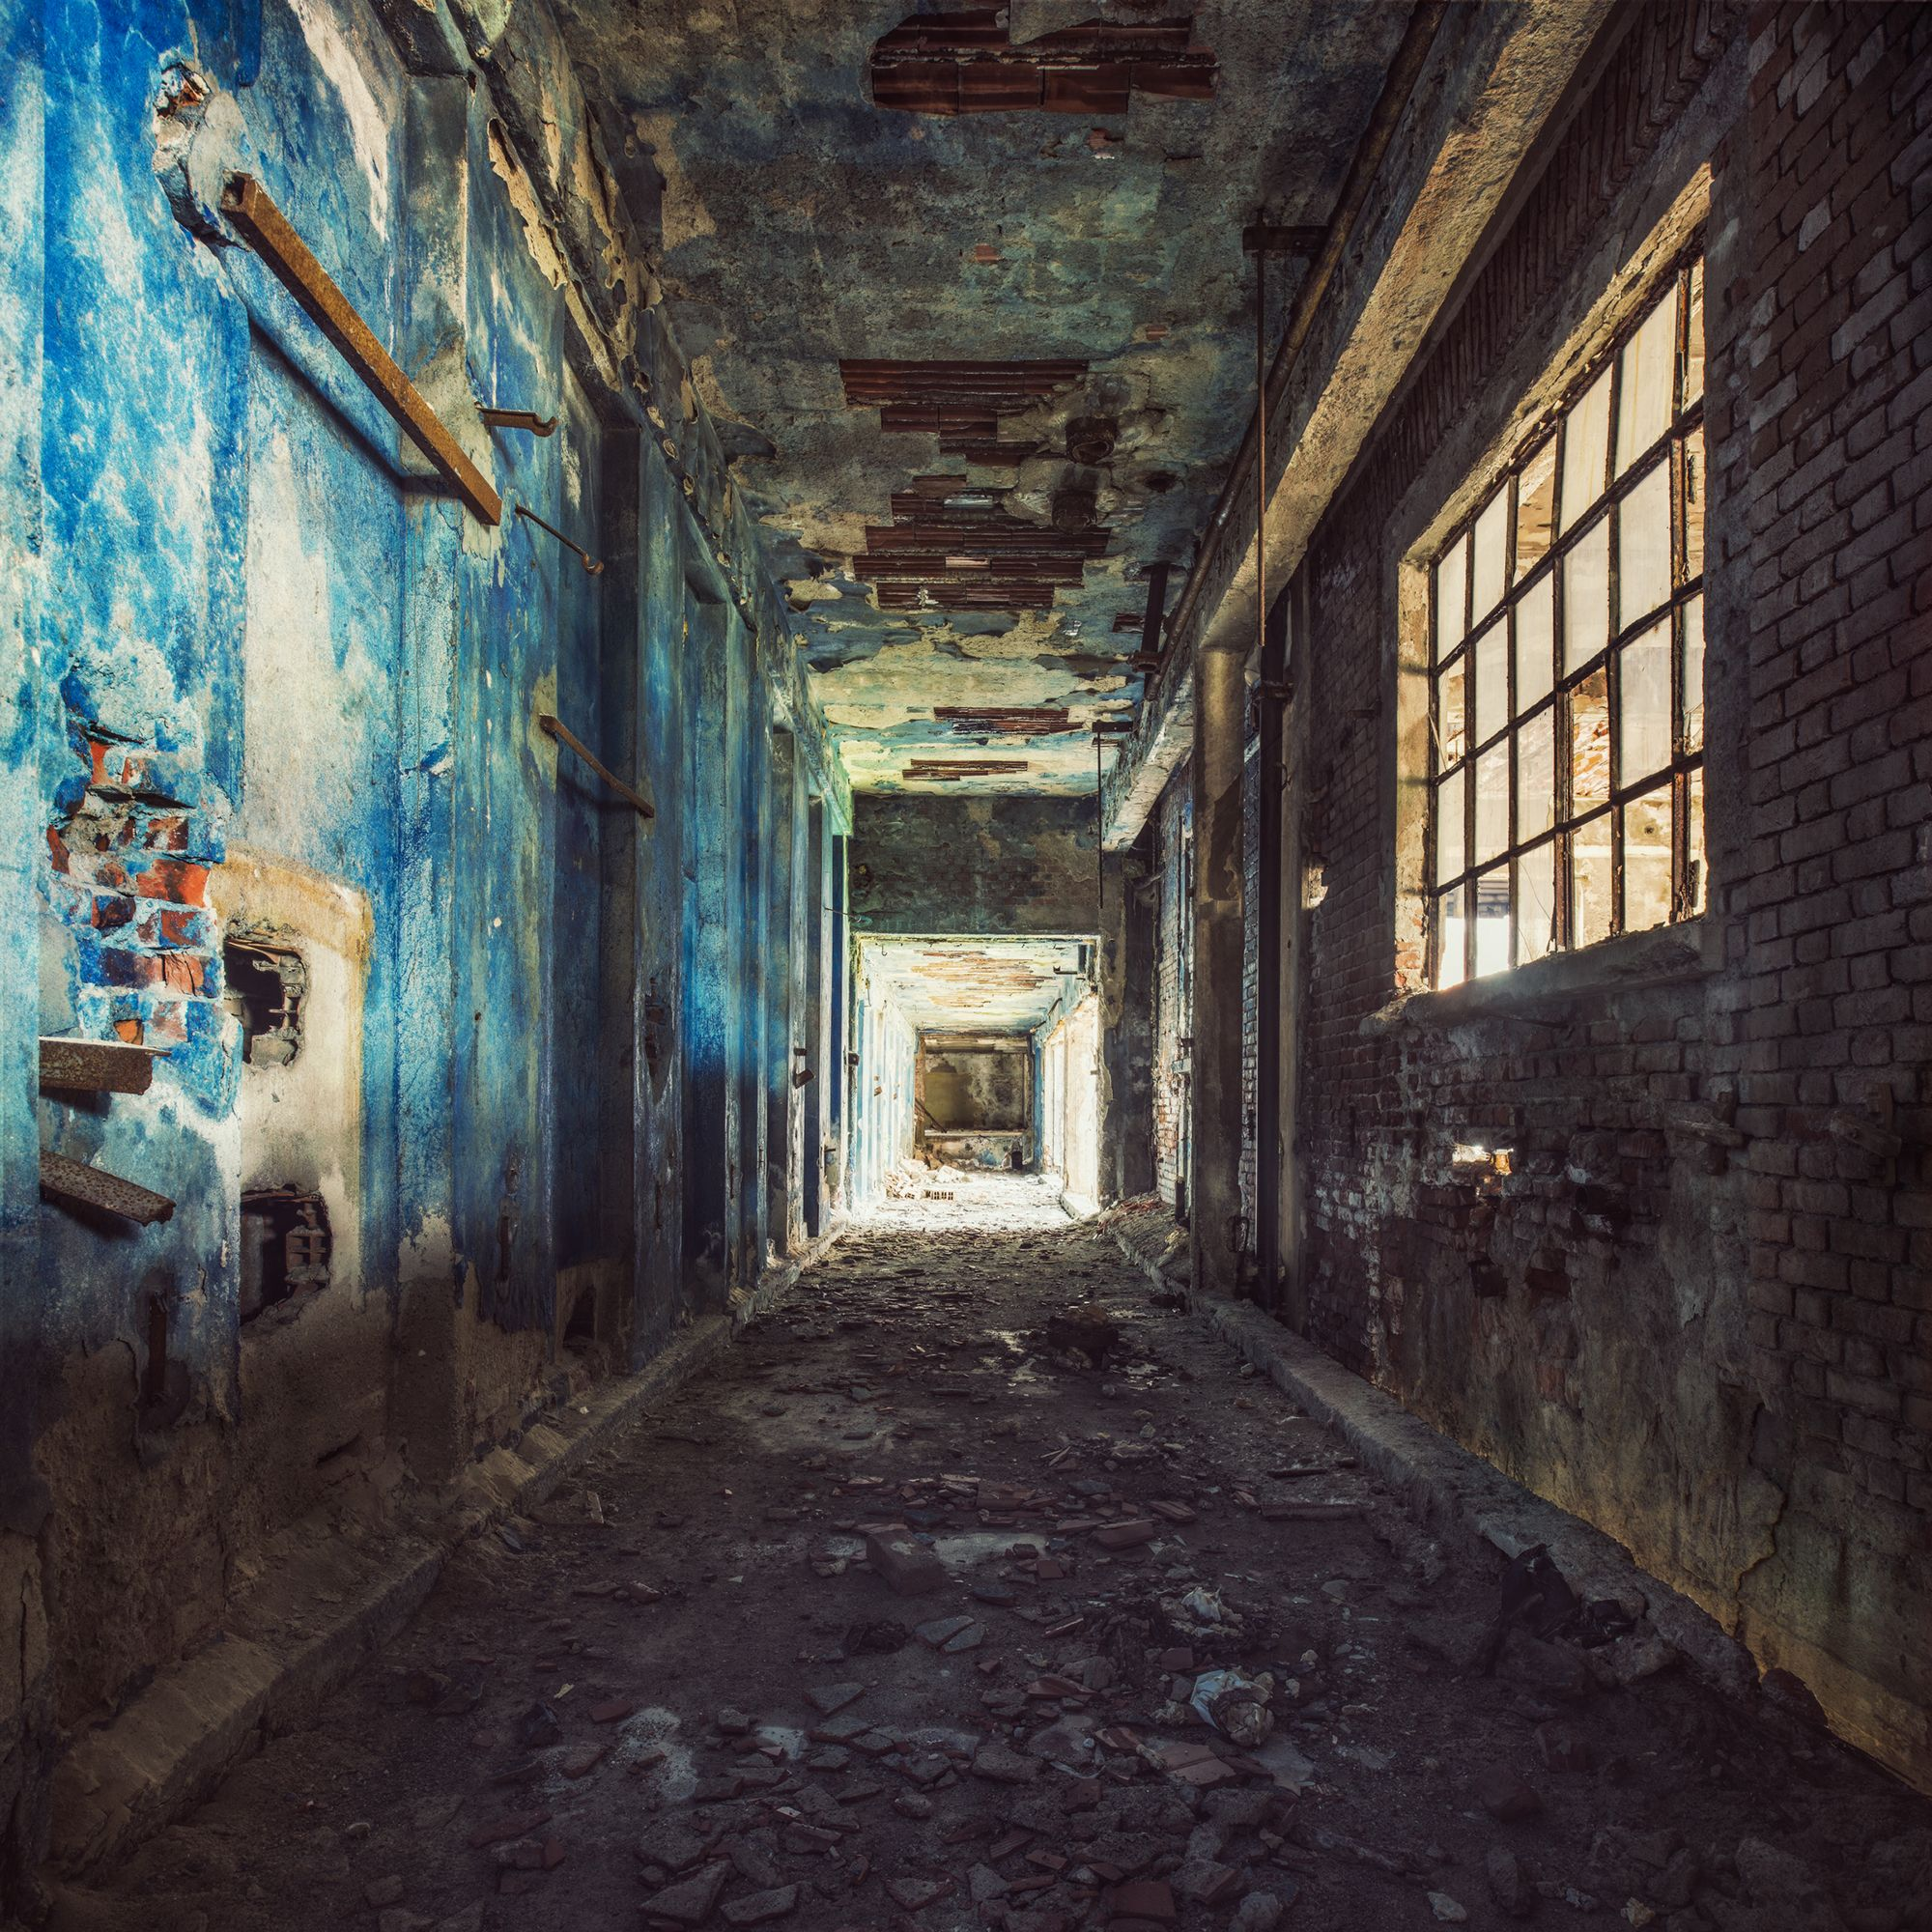 Factory Walkway,Gina Soden,Photographie